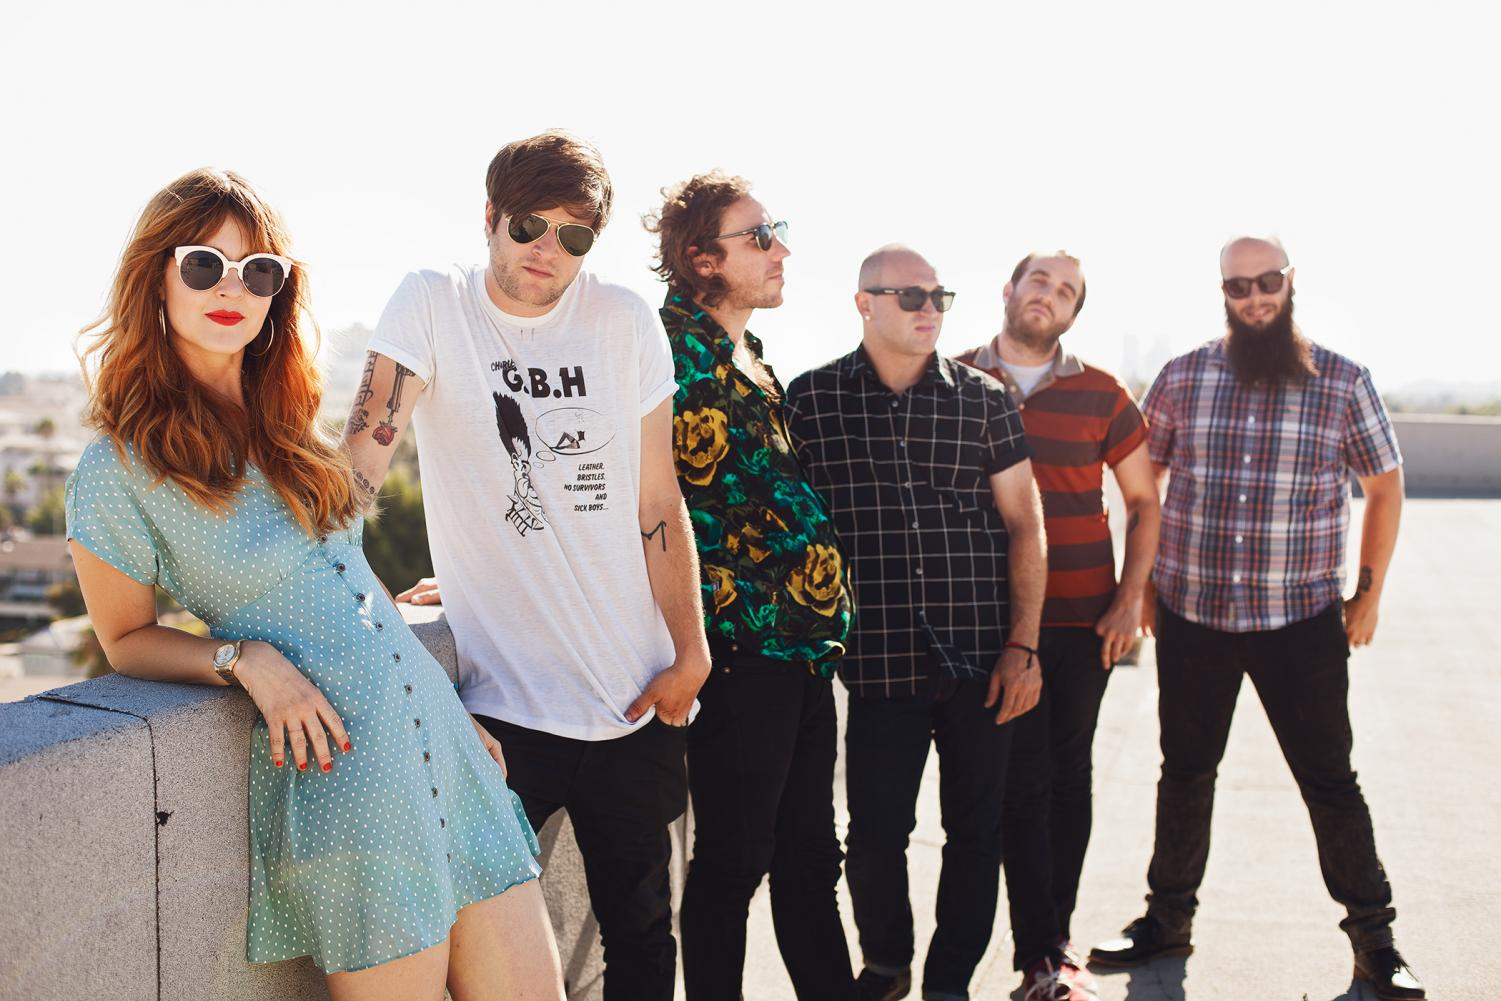 California band The Mowgli's is set to perform at the Double Door, 1551 N. Damen Ave., on Sept. 28 just before the release of its fourth studio album.